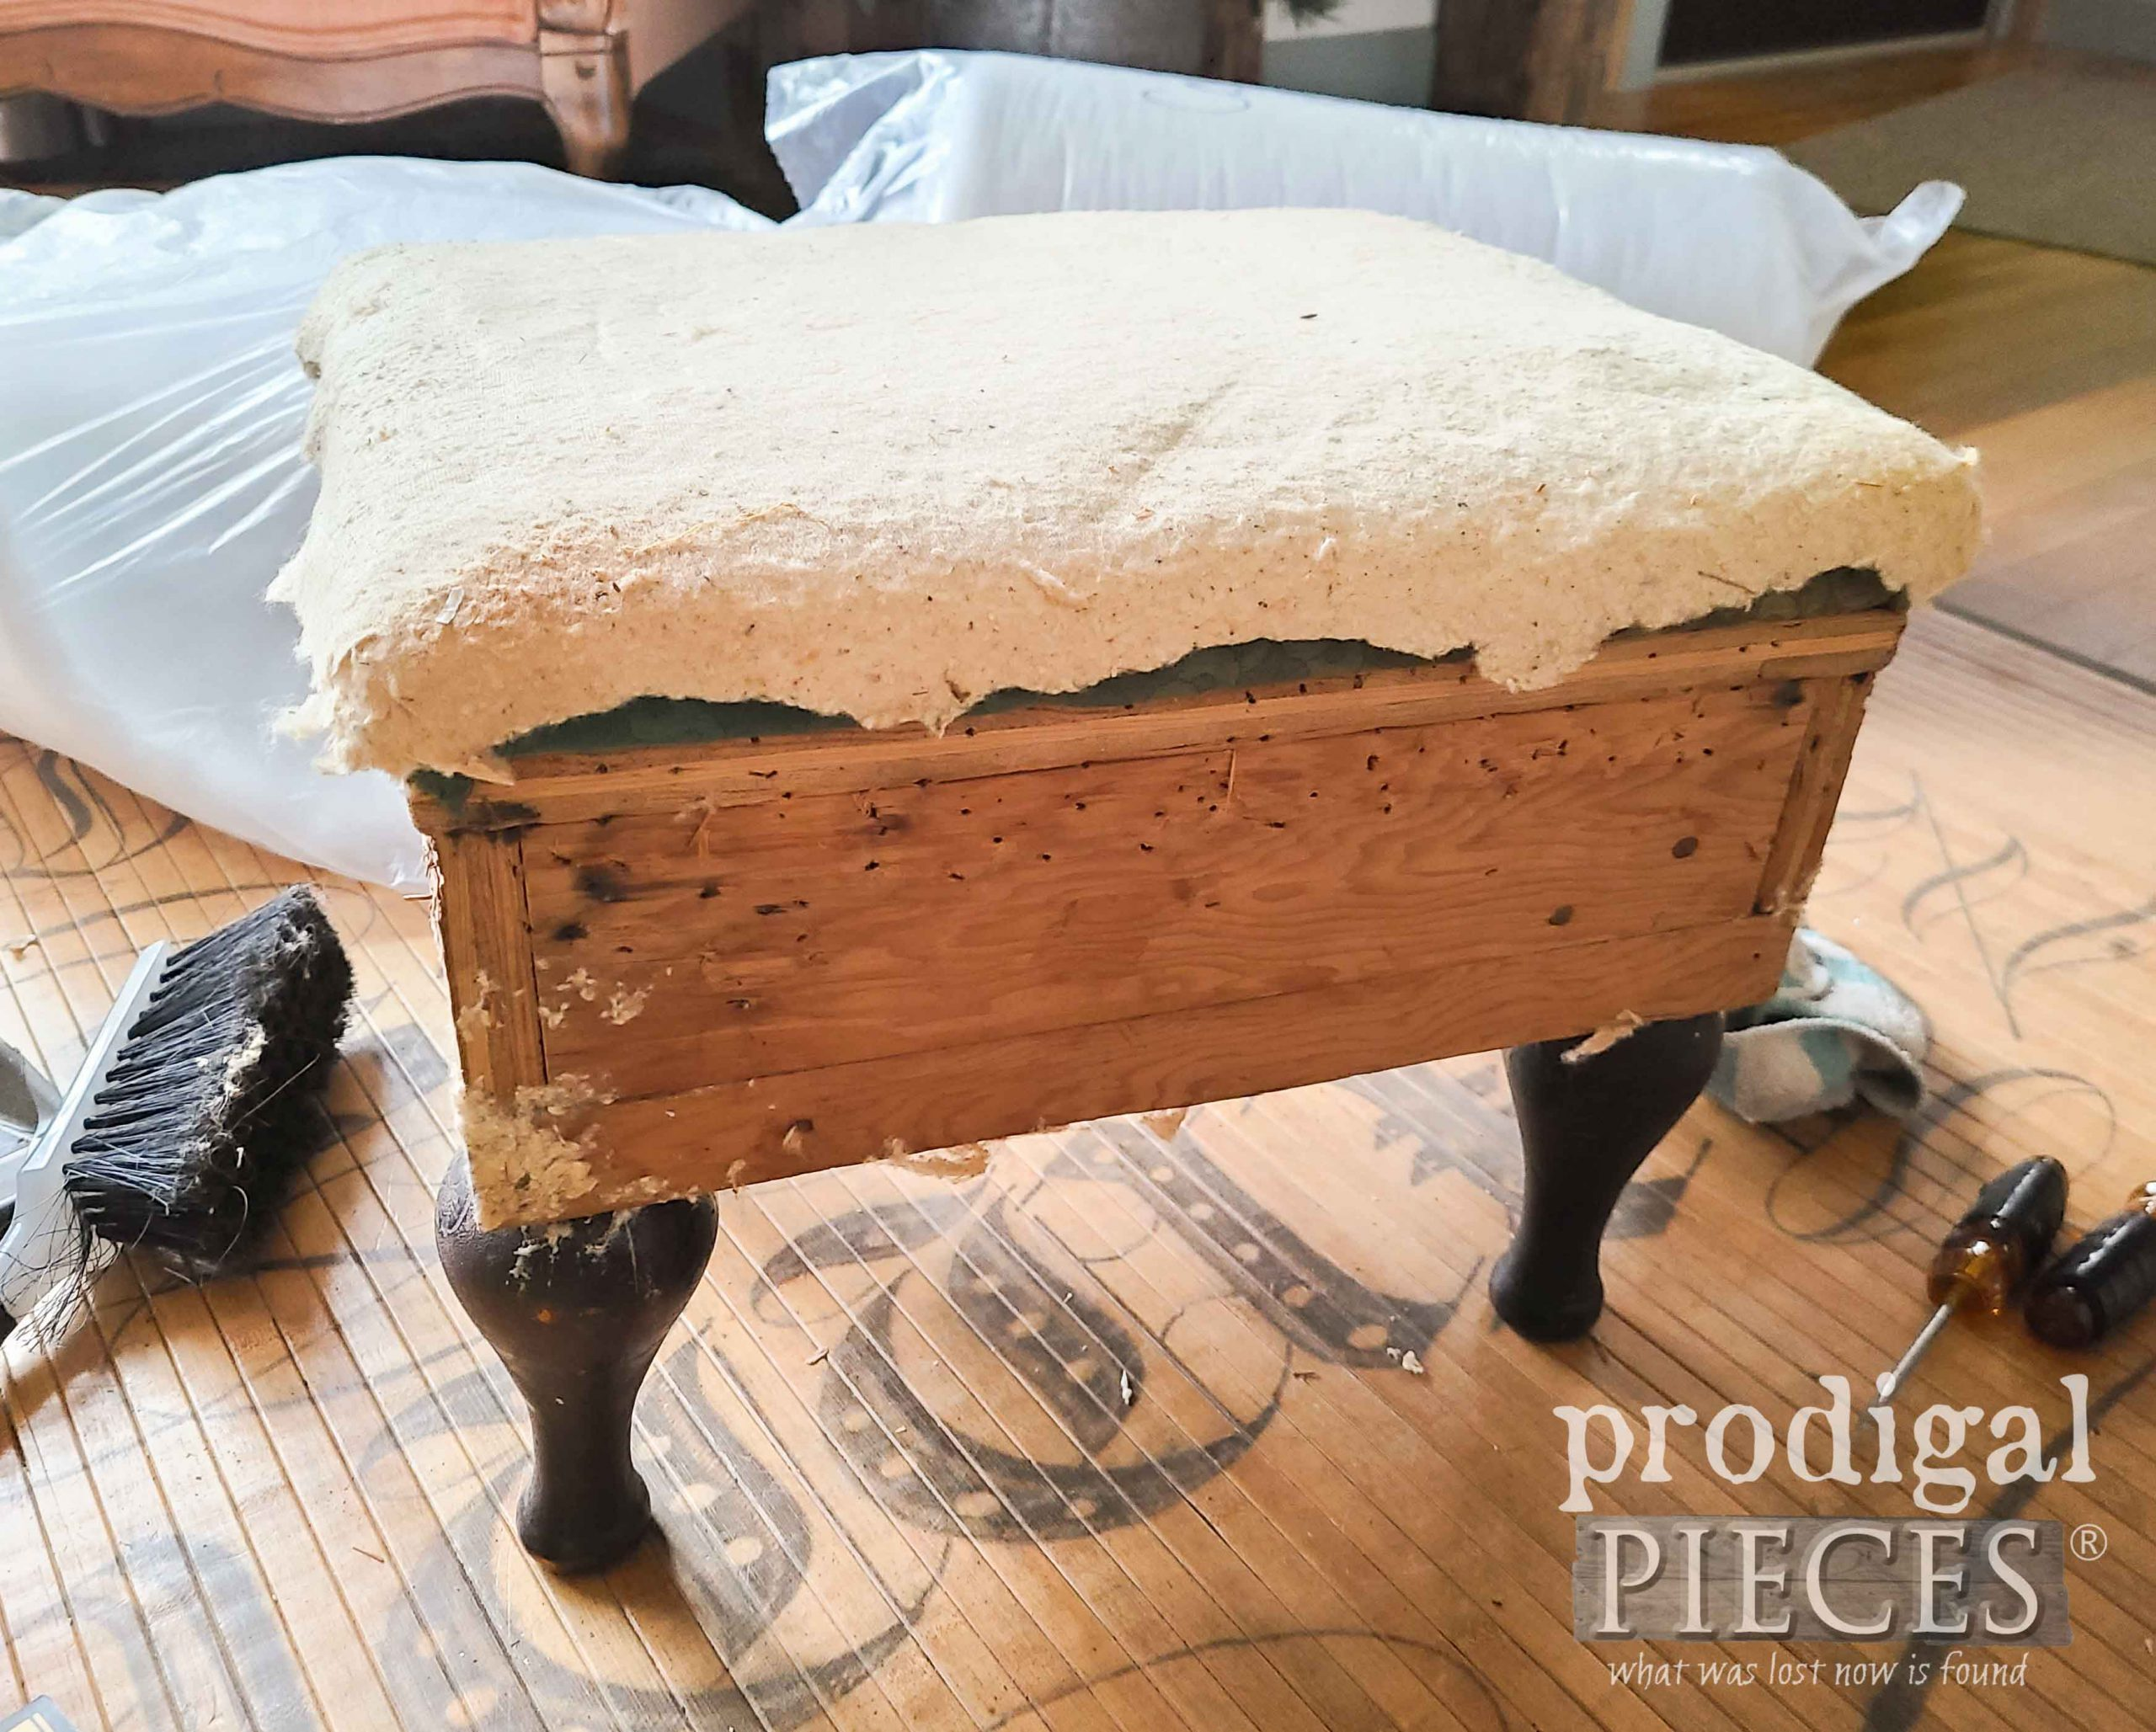 Naked Vintage Vinyl Footstool Before Makeover by Larissa of Prodigal Pieces | prodigalpieces.com #prodigalpieces